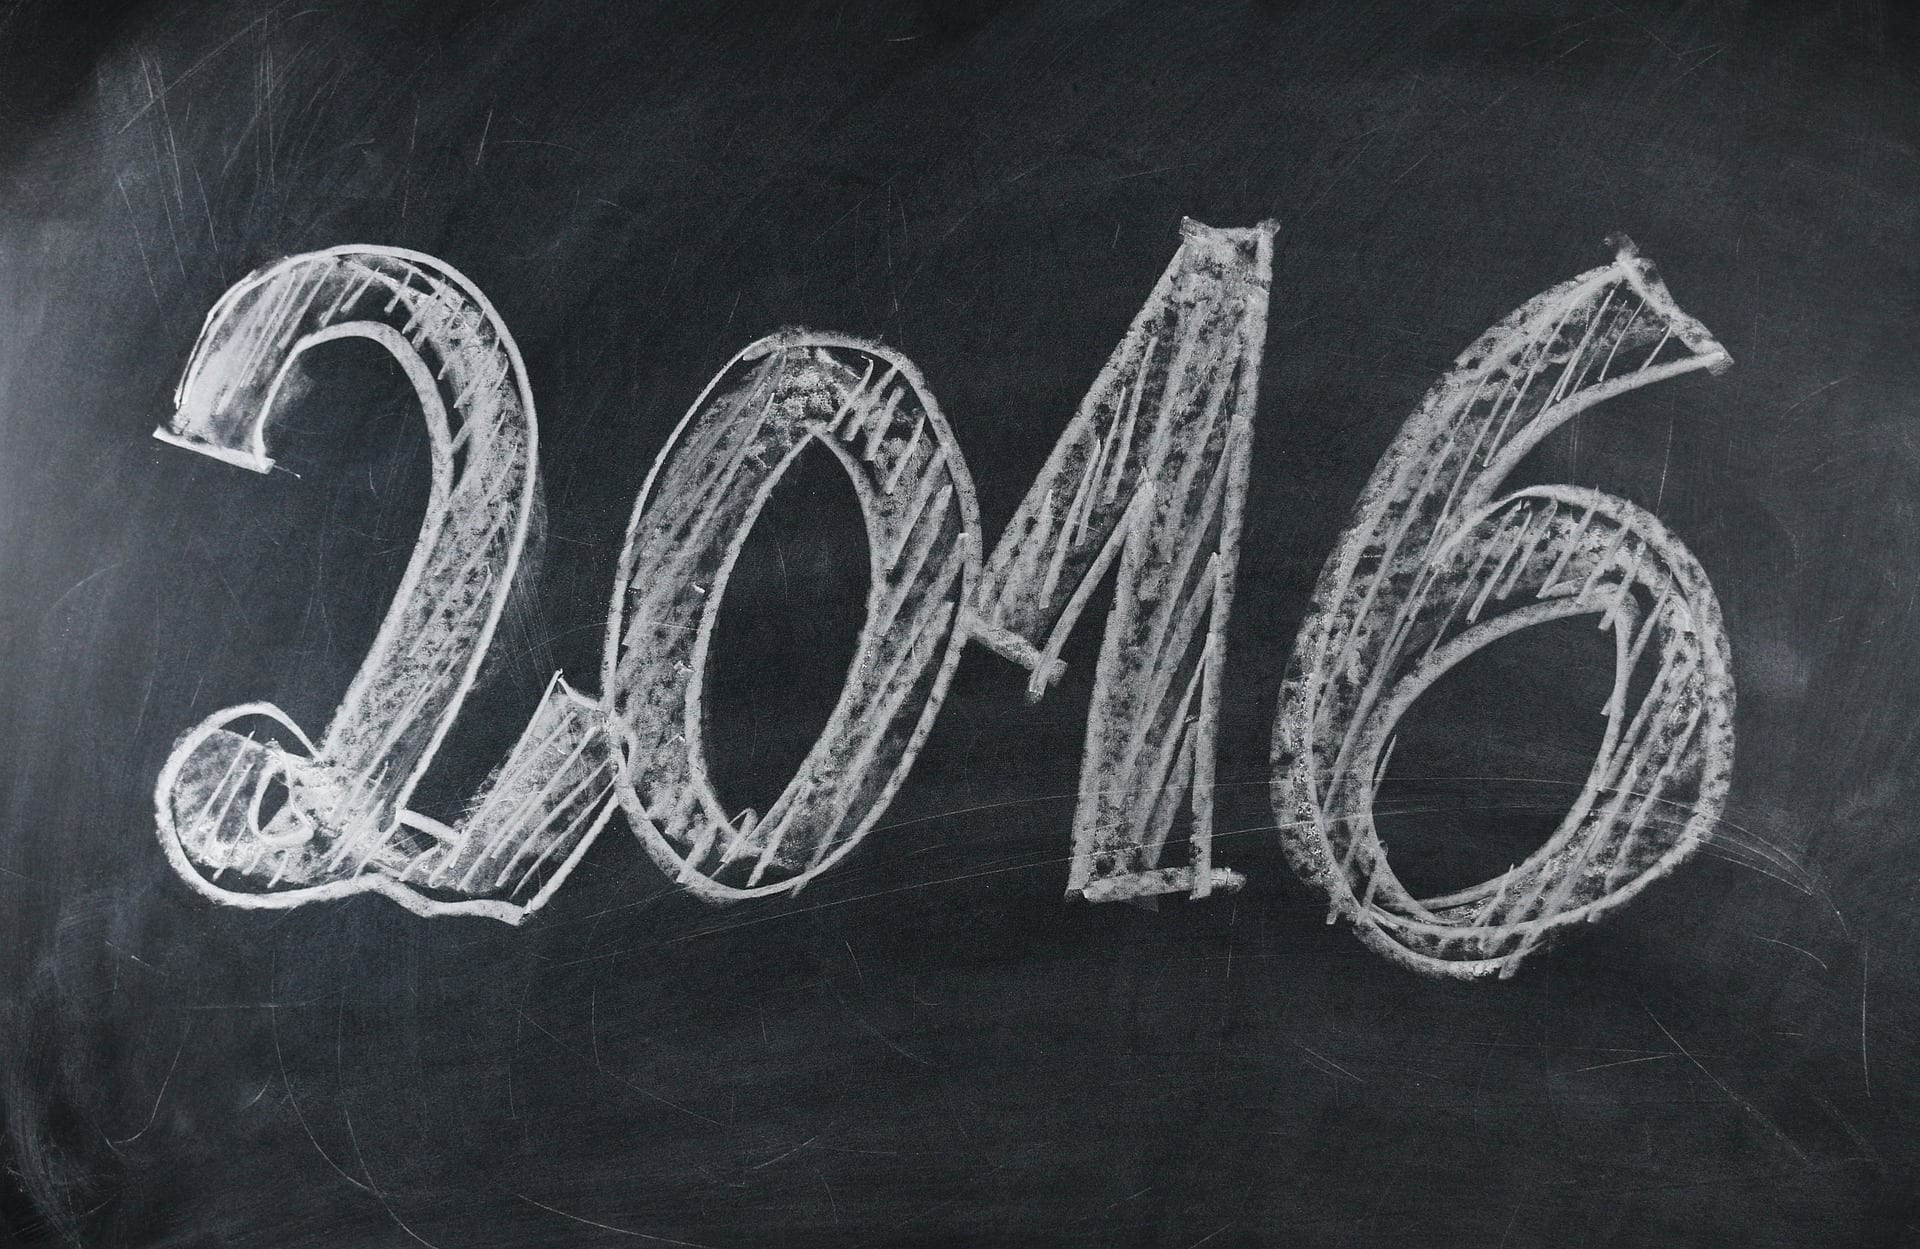 Image courtesy of Pixabay, labeled for reuse: https://pixabay.com/en/board-blackboard-new-year-s-day-1108458/